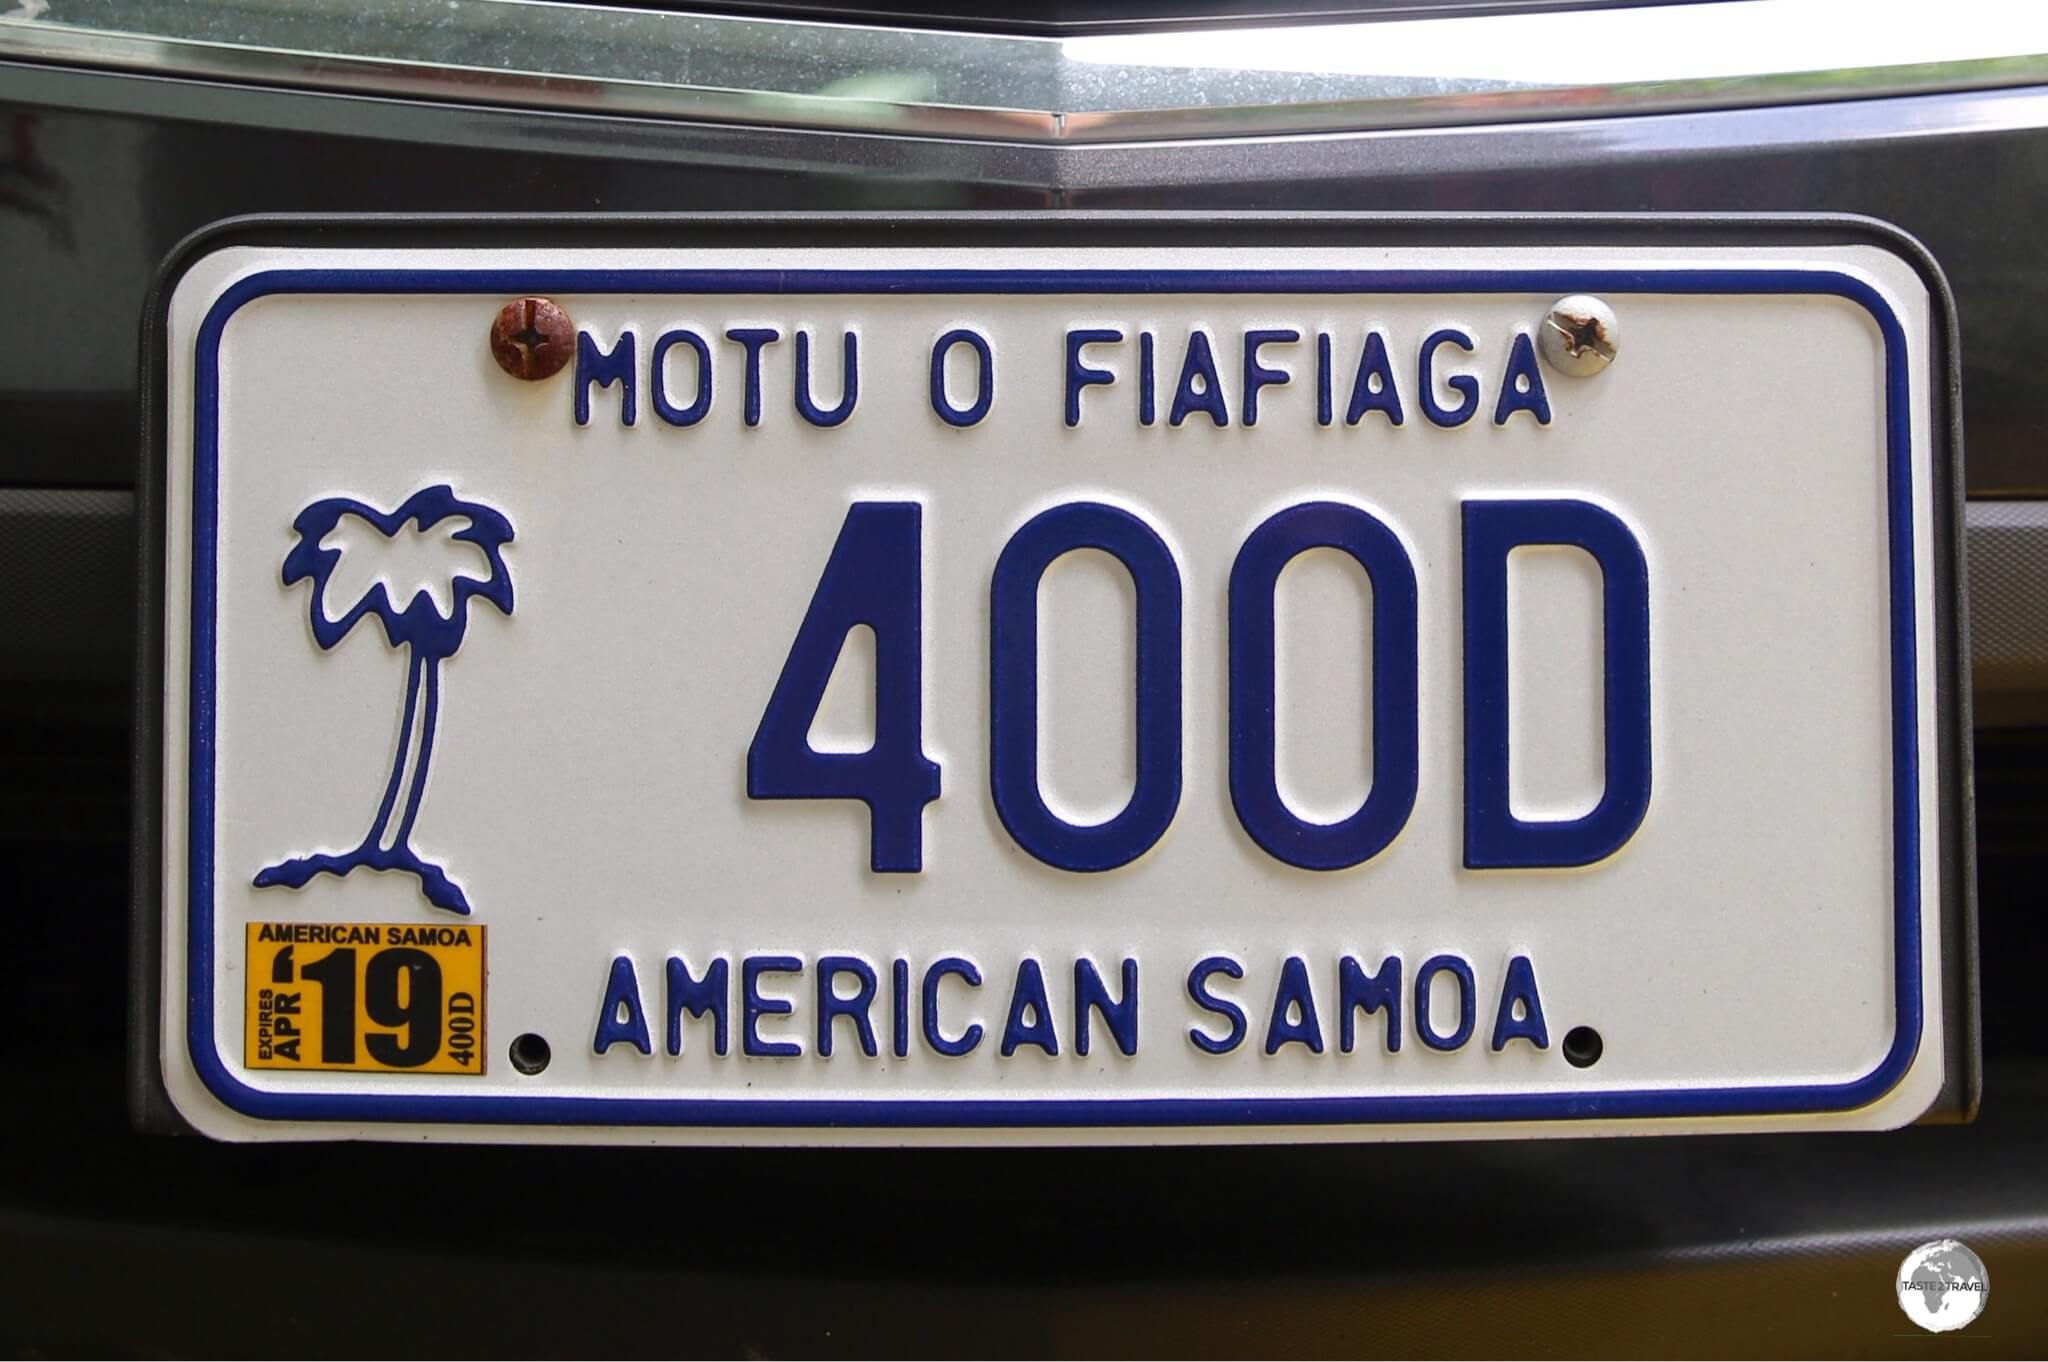 An American Samoa license plate.